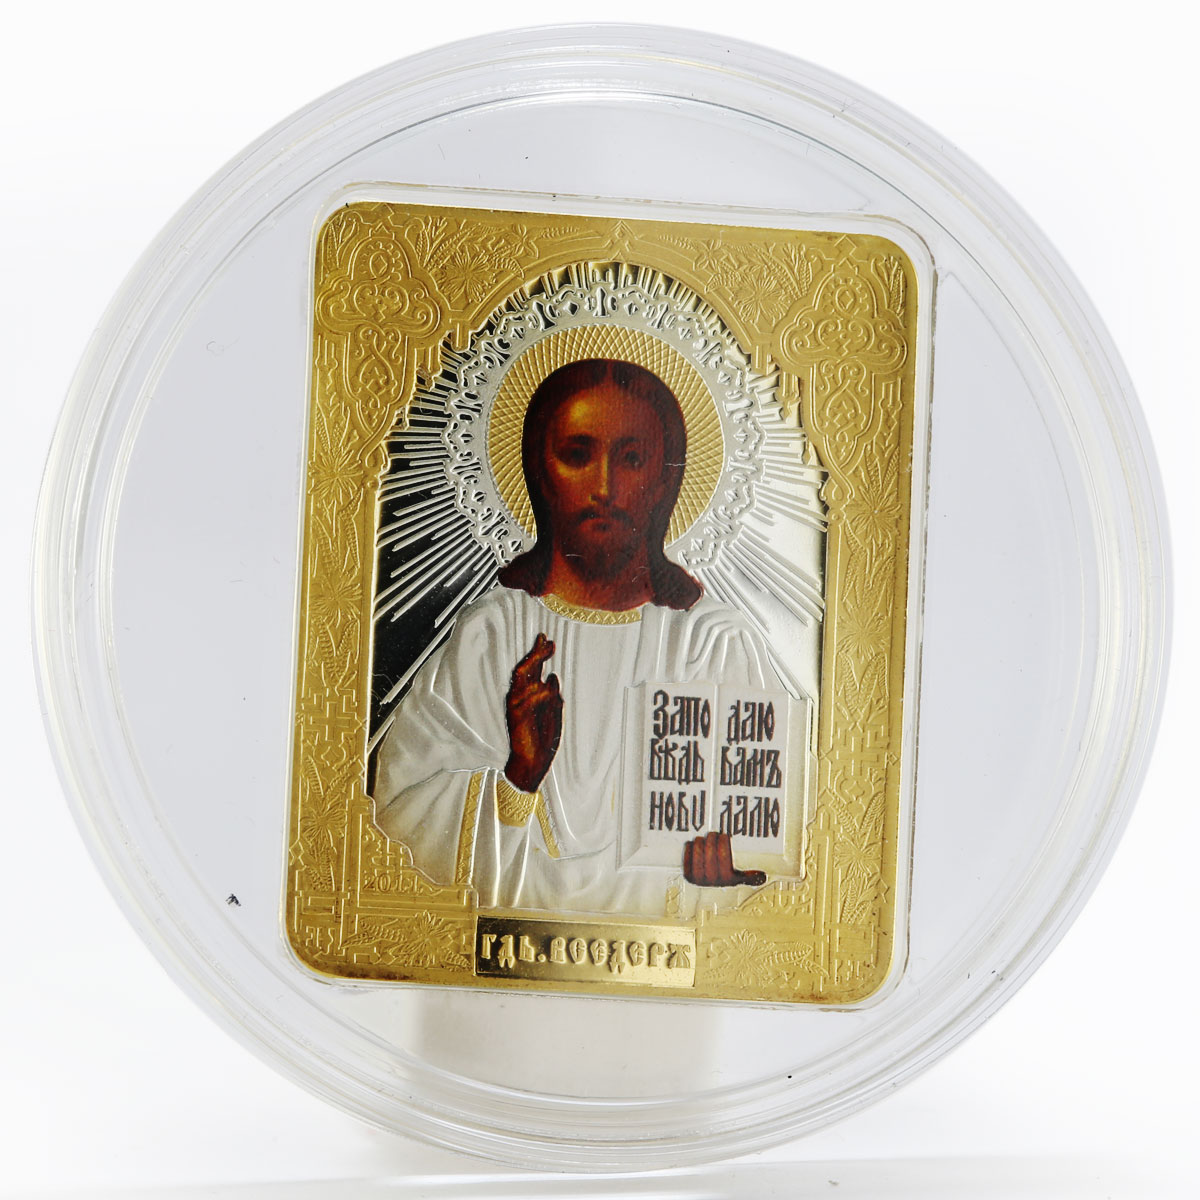 Cook Island 5 dollars Icons The Saviour orthdox gilded colored proof coin 2011